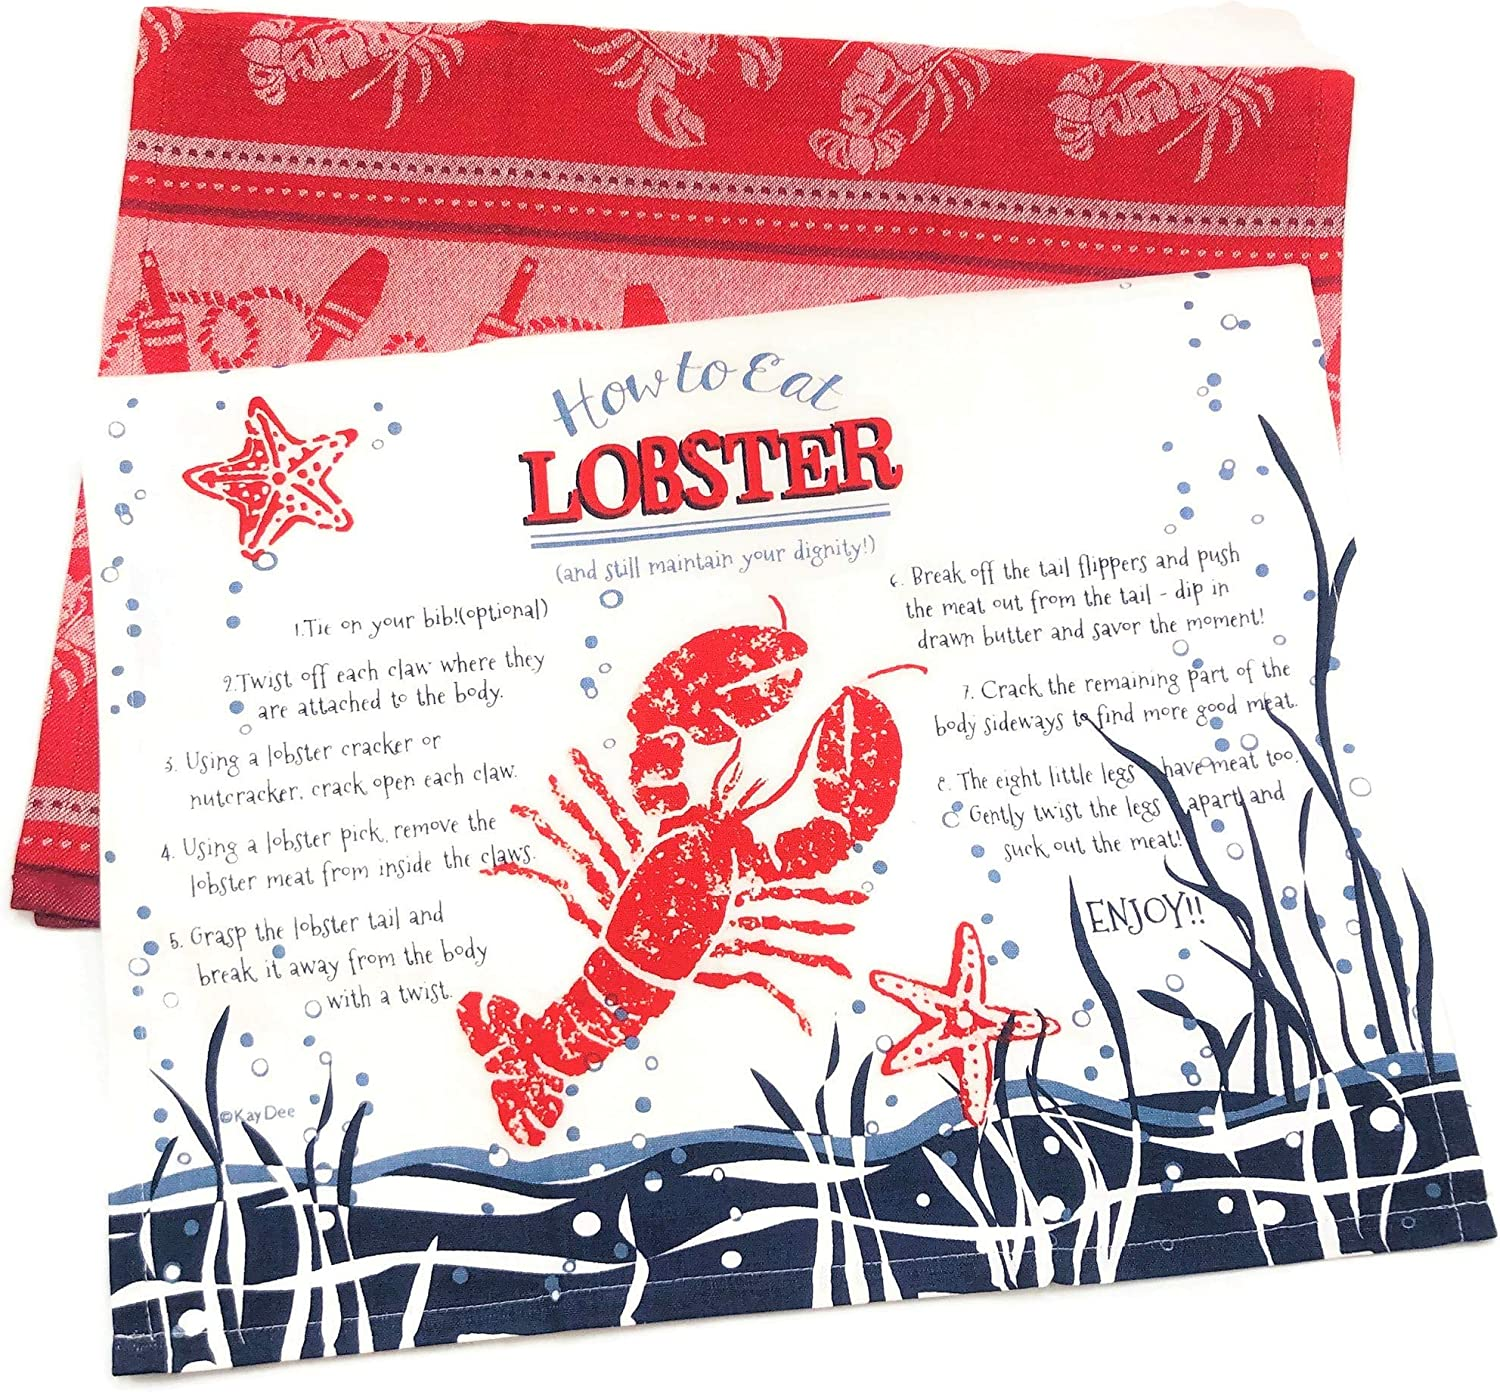 Set of 2 Lobster Towels for Cooking Cleaning Drying Baking Kay Dee Designs How to Eat Lobster Tea Towel /& Lobster Jacquard Tea Towel Kitchen Dishtowels